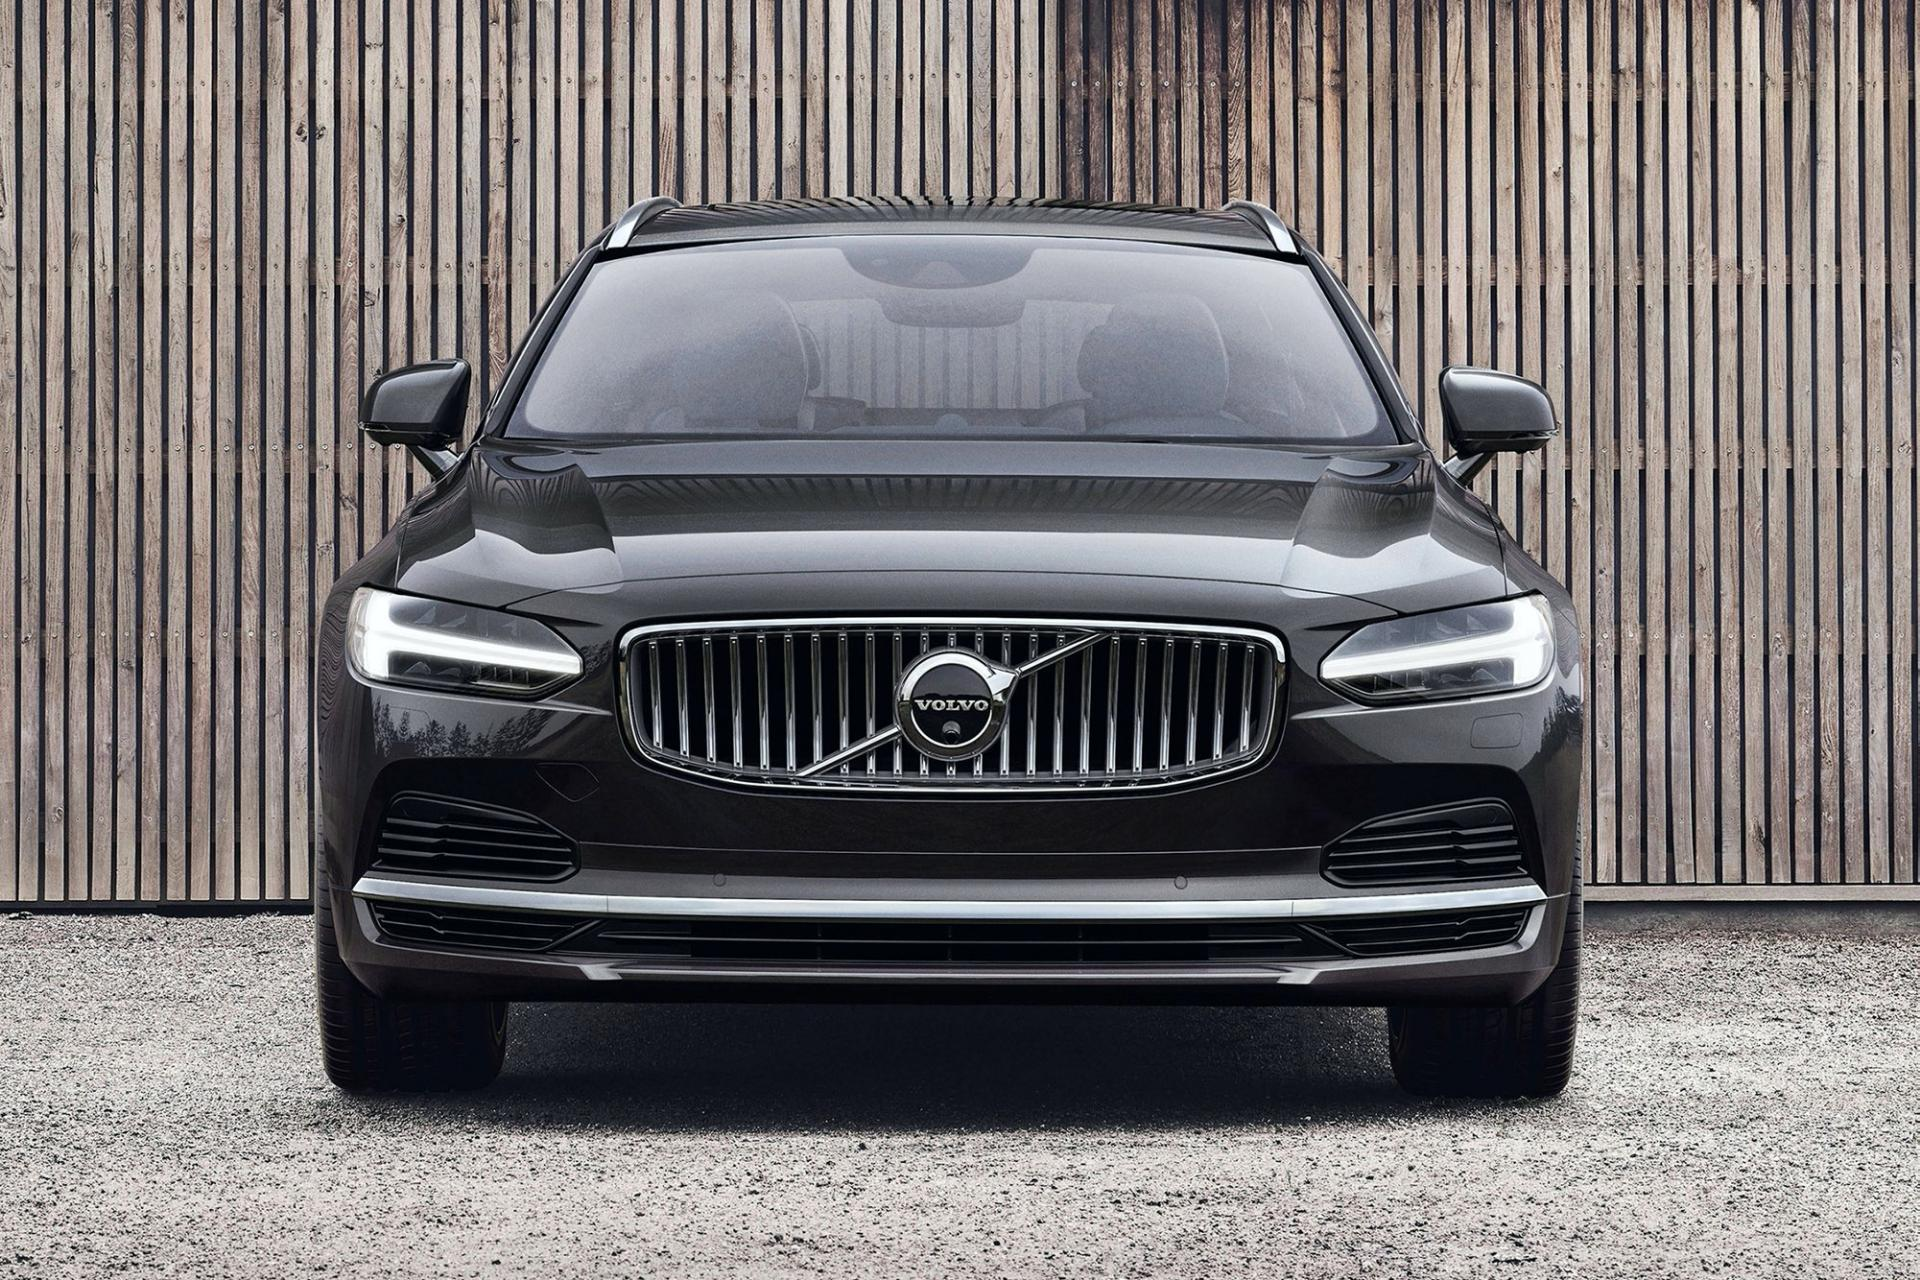 2021-Volvo-S90-hybrid-in-Platinum-Grey-7